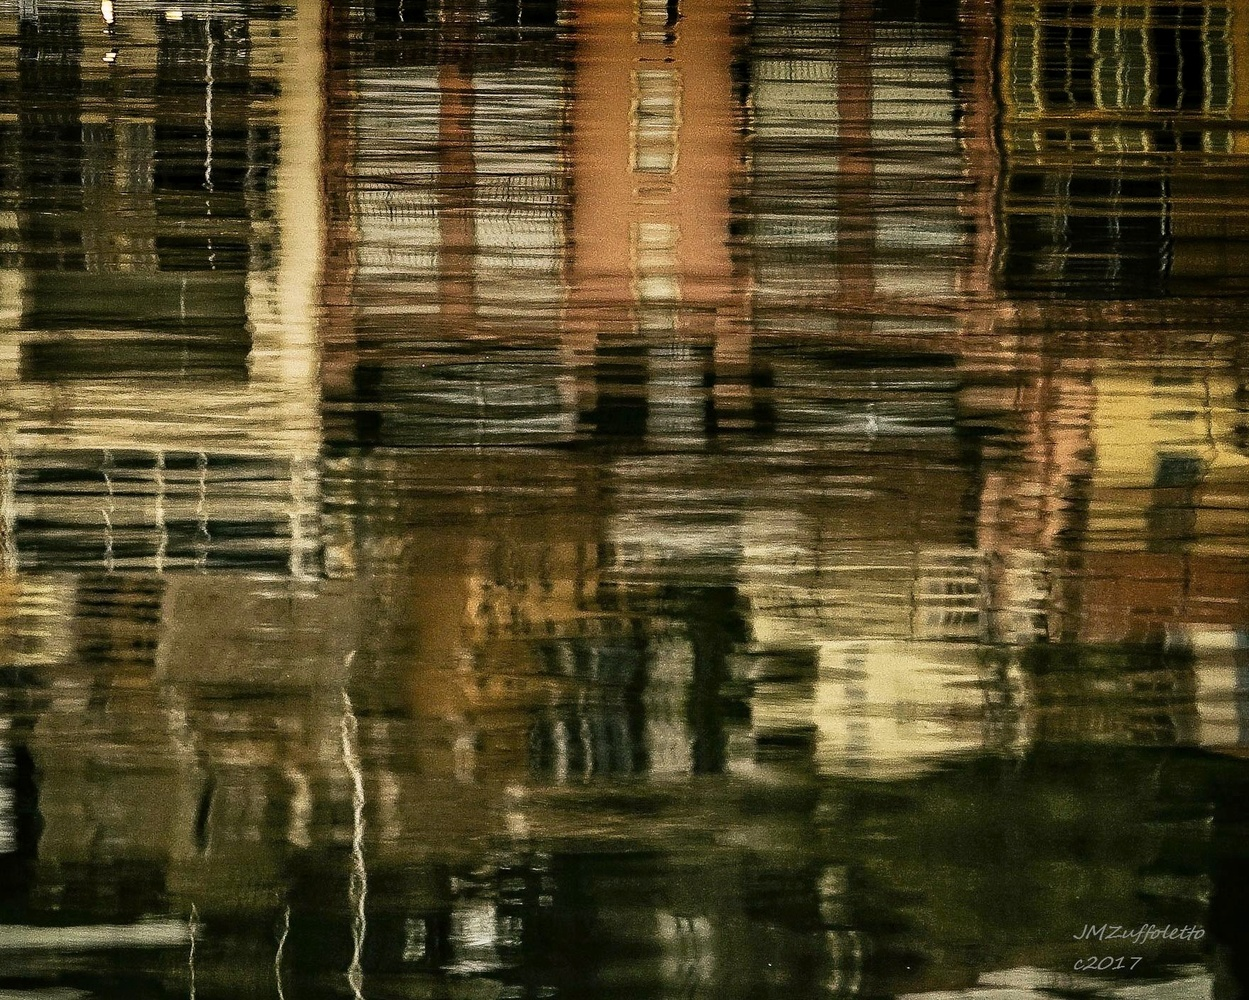 Water reflections by James Zuffoletto